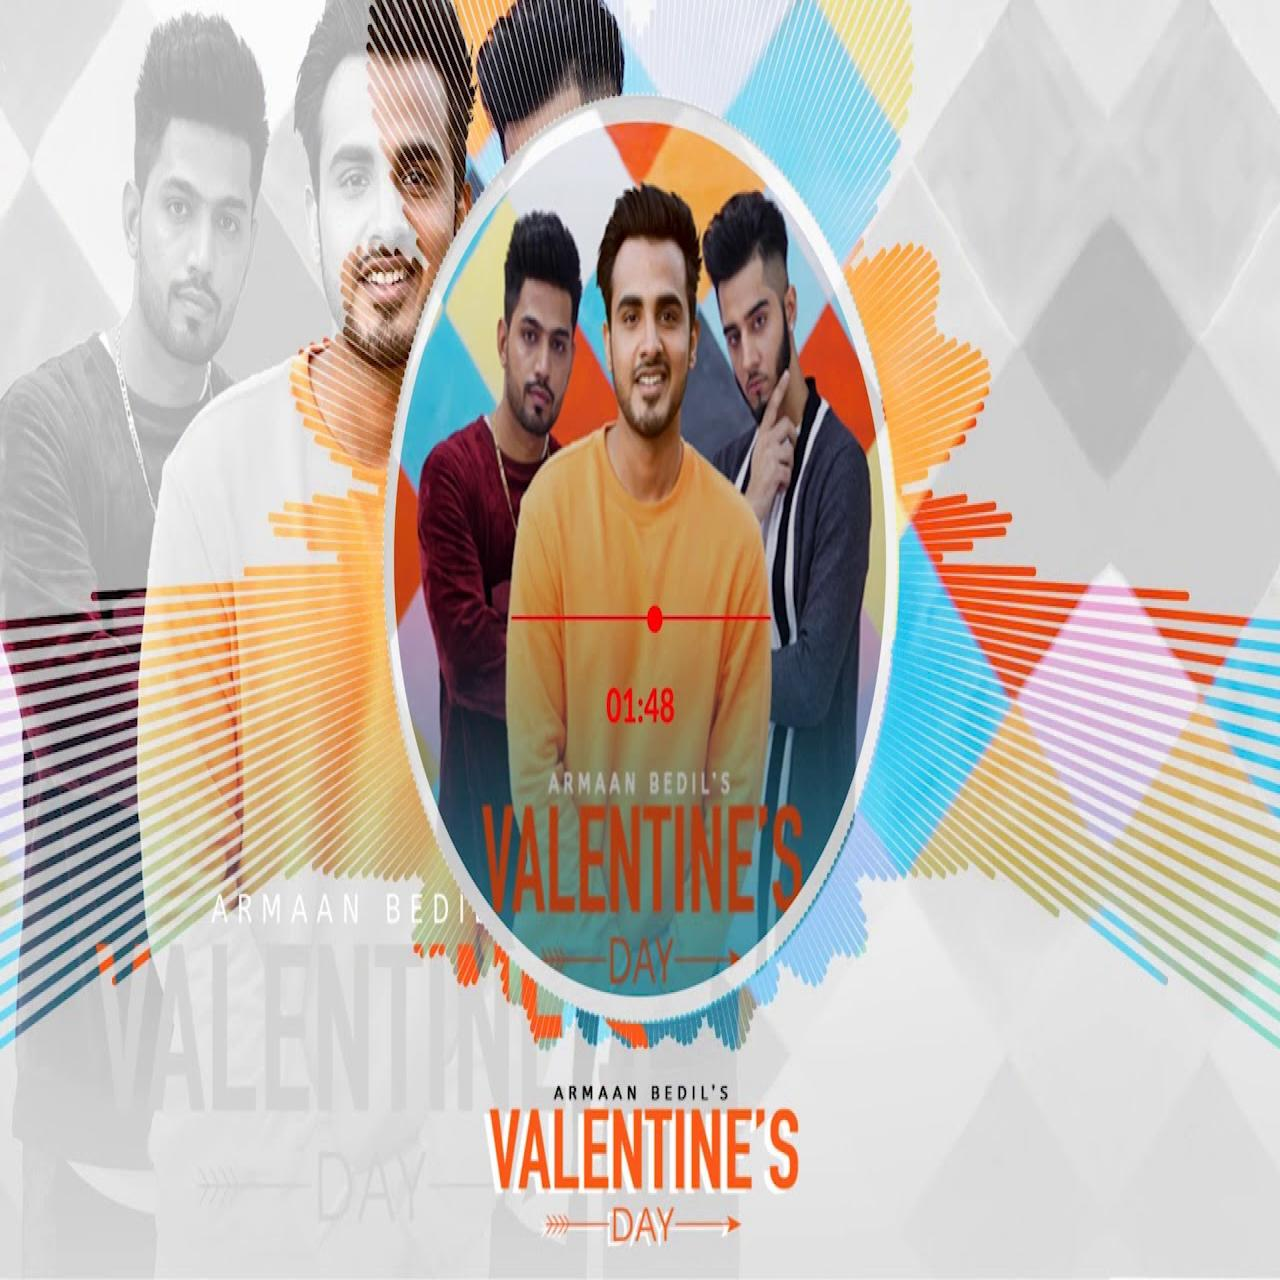 free download Valentines Day Armaan Bedil full mp3 songs